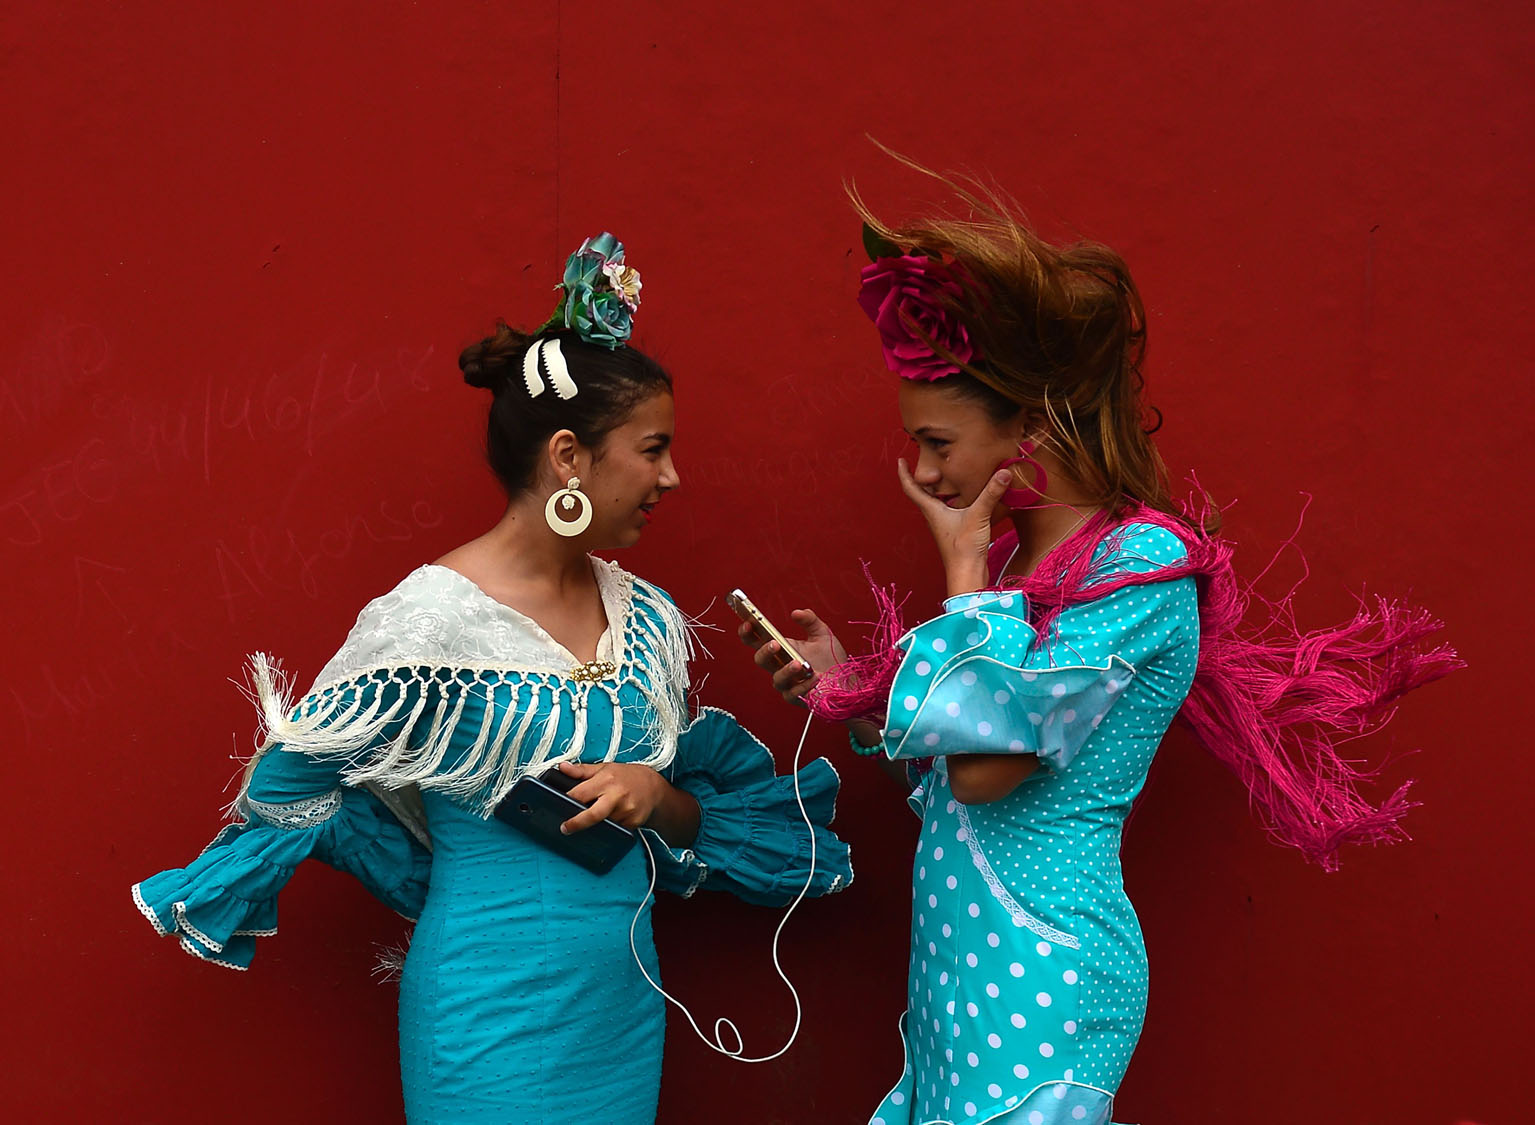 Feria de Abril, 'April Fair,' in Seville